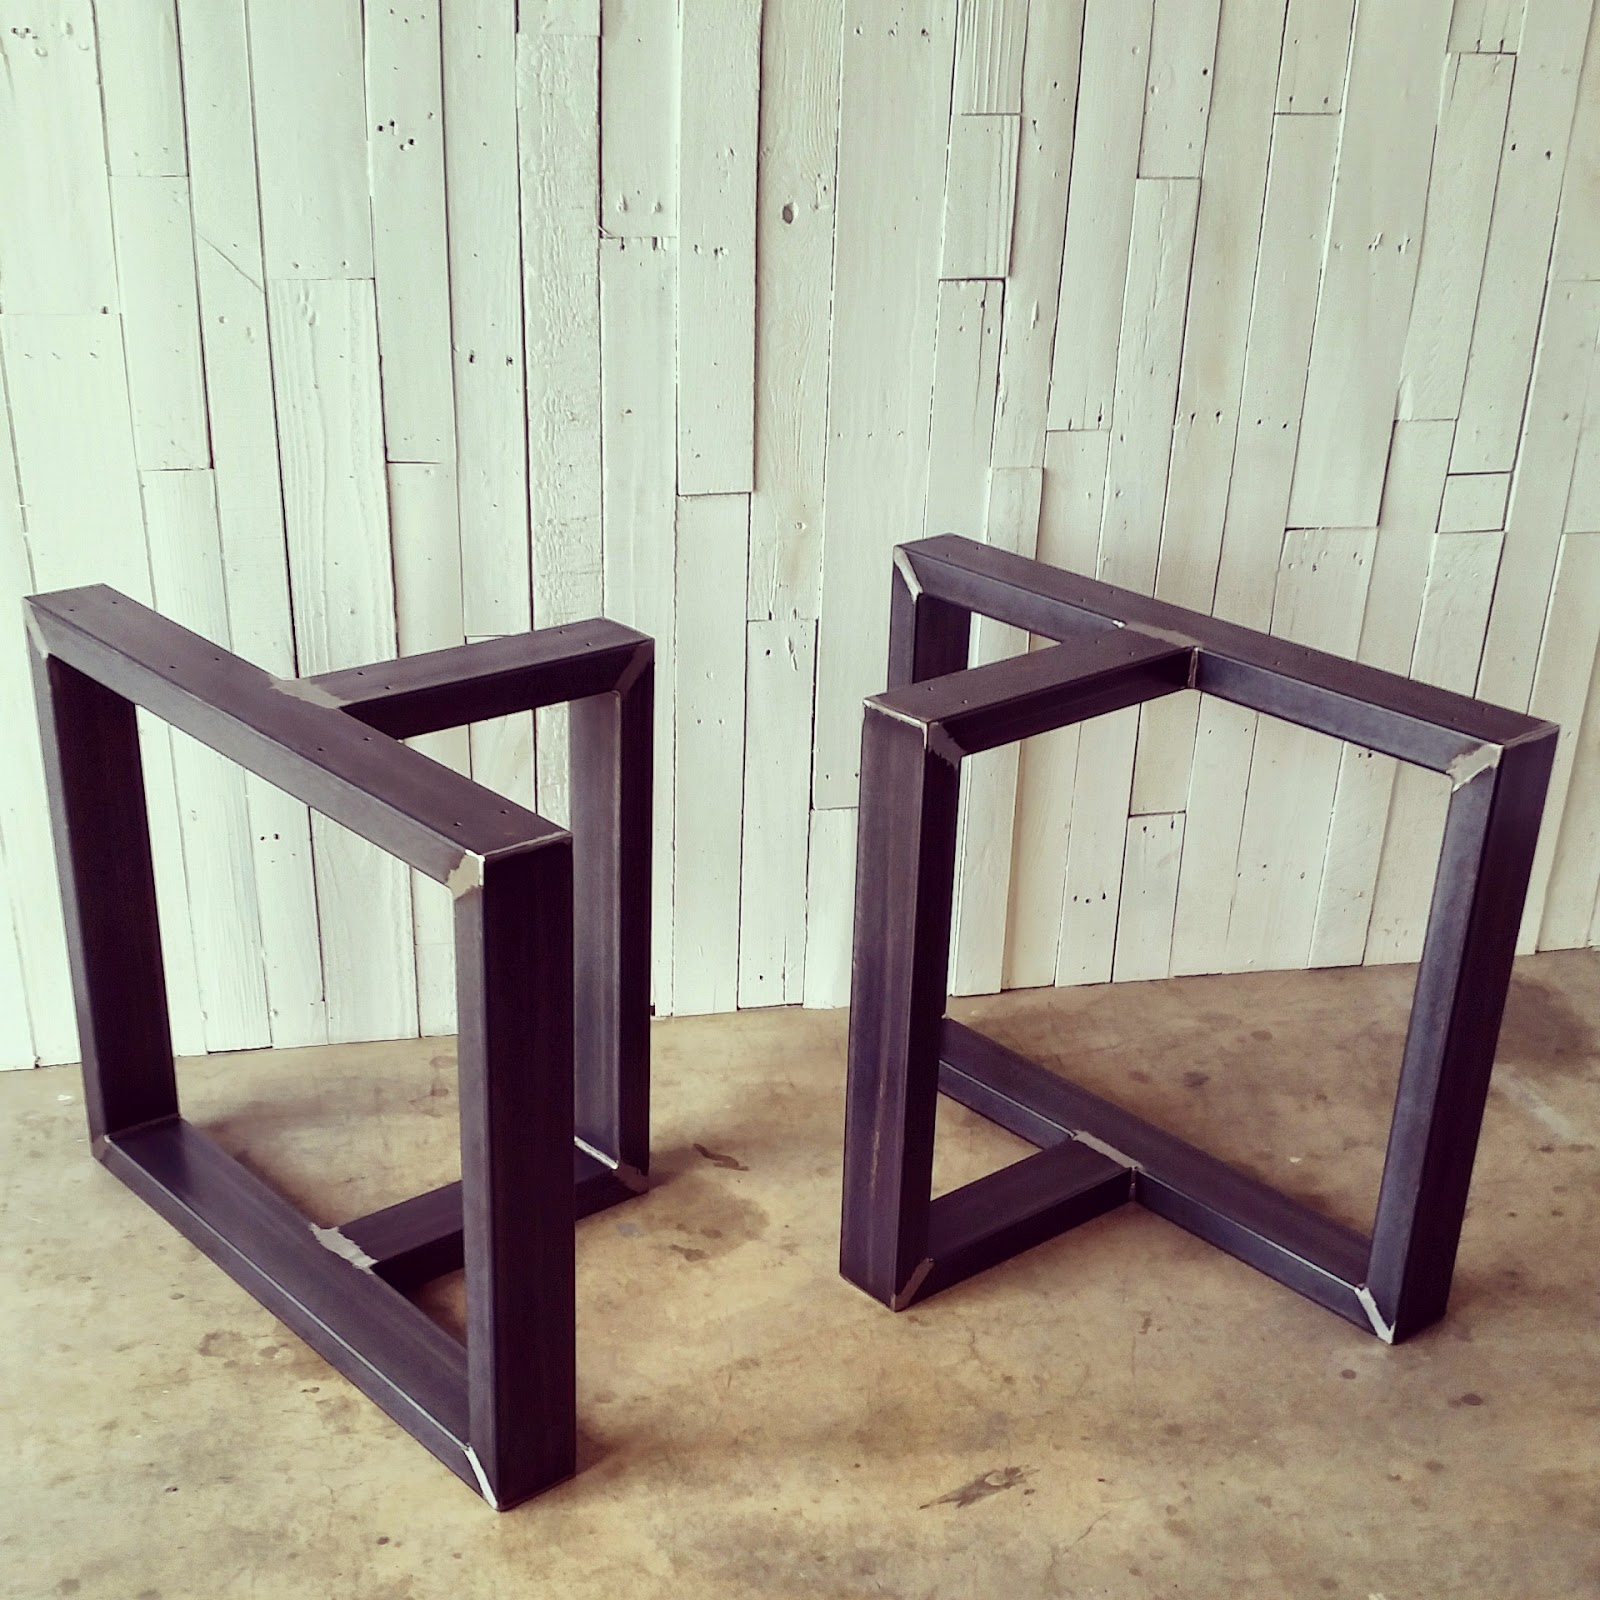 metal table legs and bases